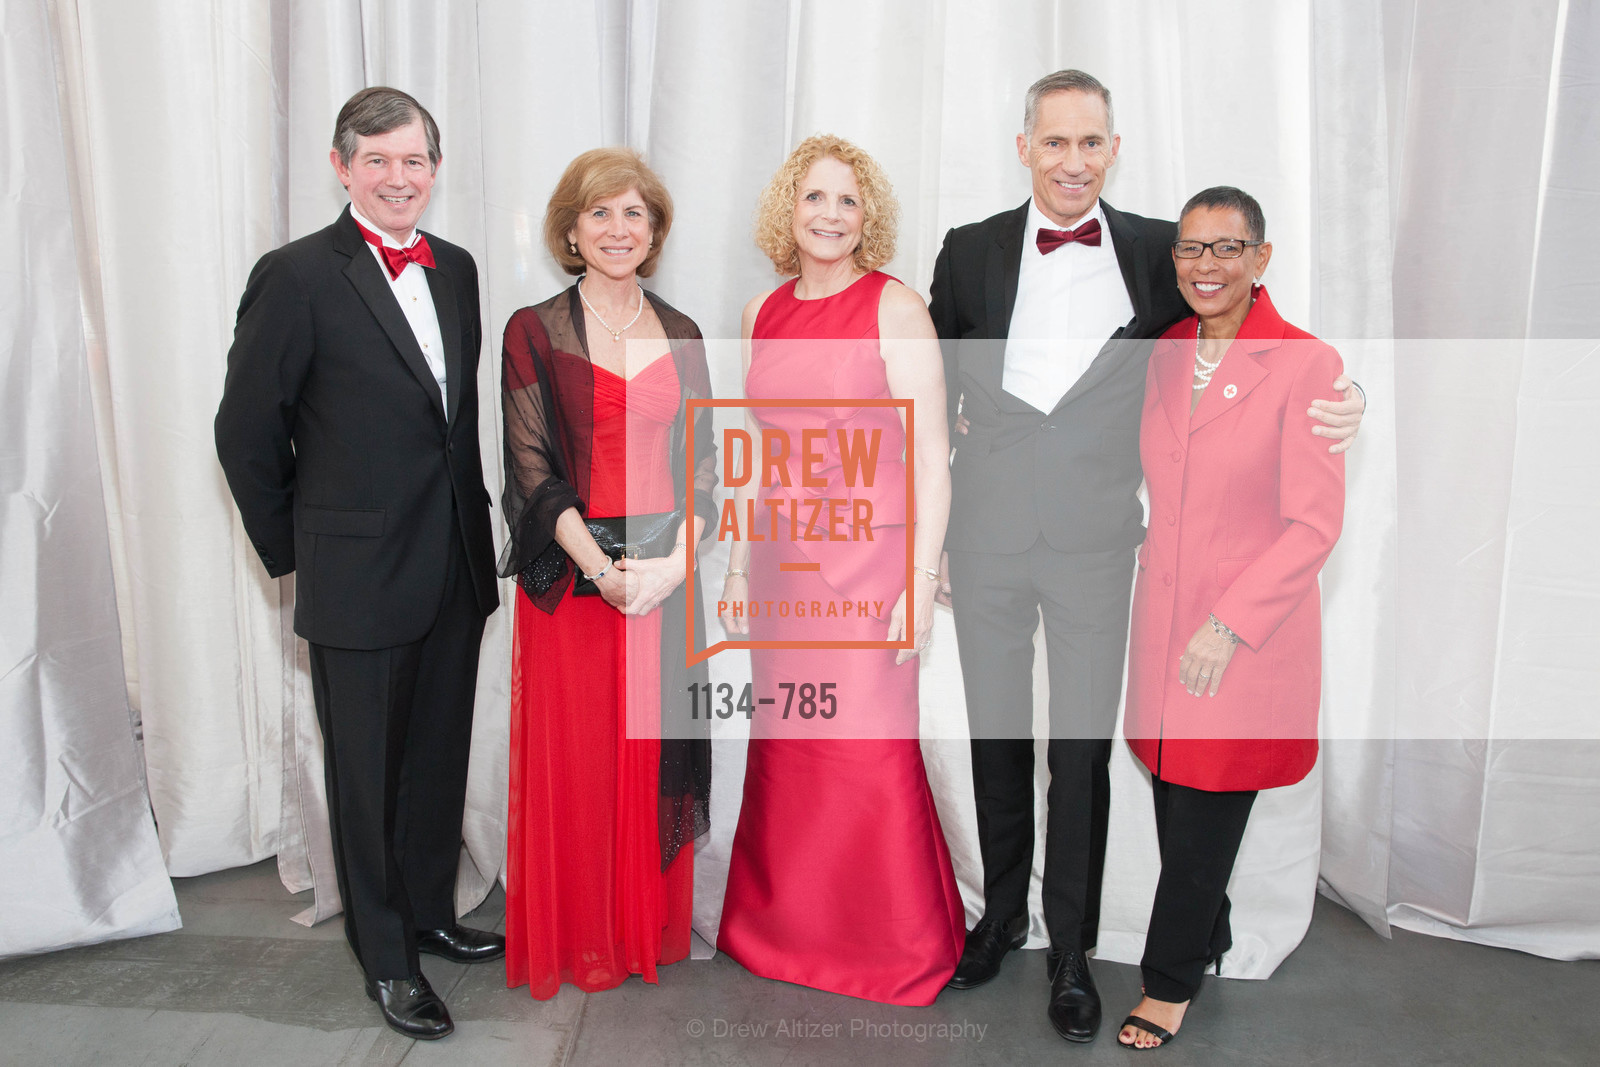 Anthony Earley, Gail McGovern, Sarah Earley, Mark Cloutier, Donna Duay, 2015 RED CROSS Gala, US, April 11th, 2015,Drew Altizer, Drew Altizer Photography, full-service agency, private events, San Francisco photographer, photographer california